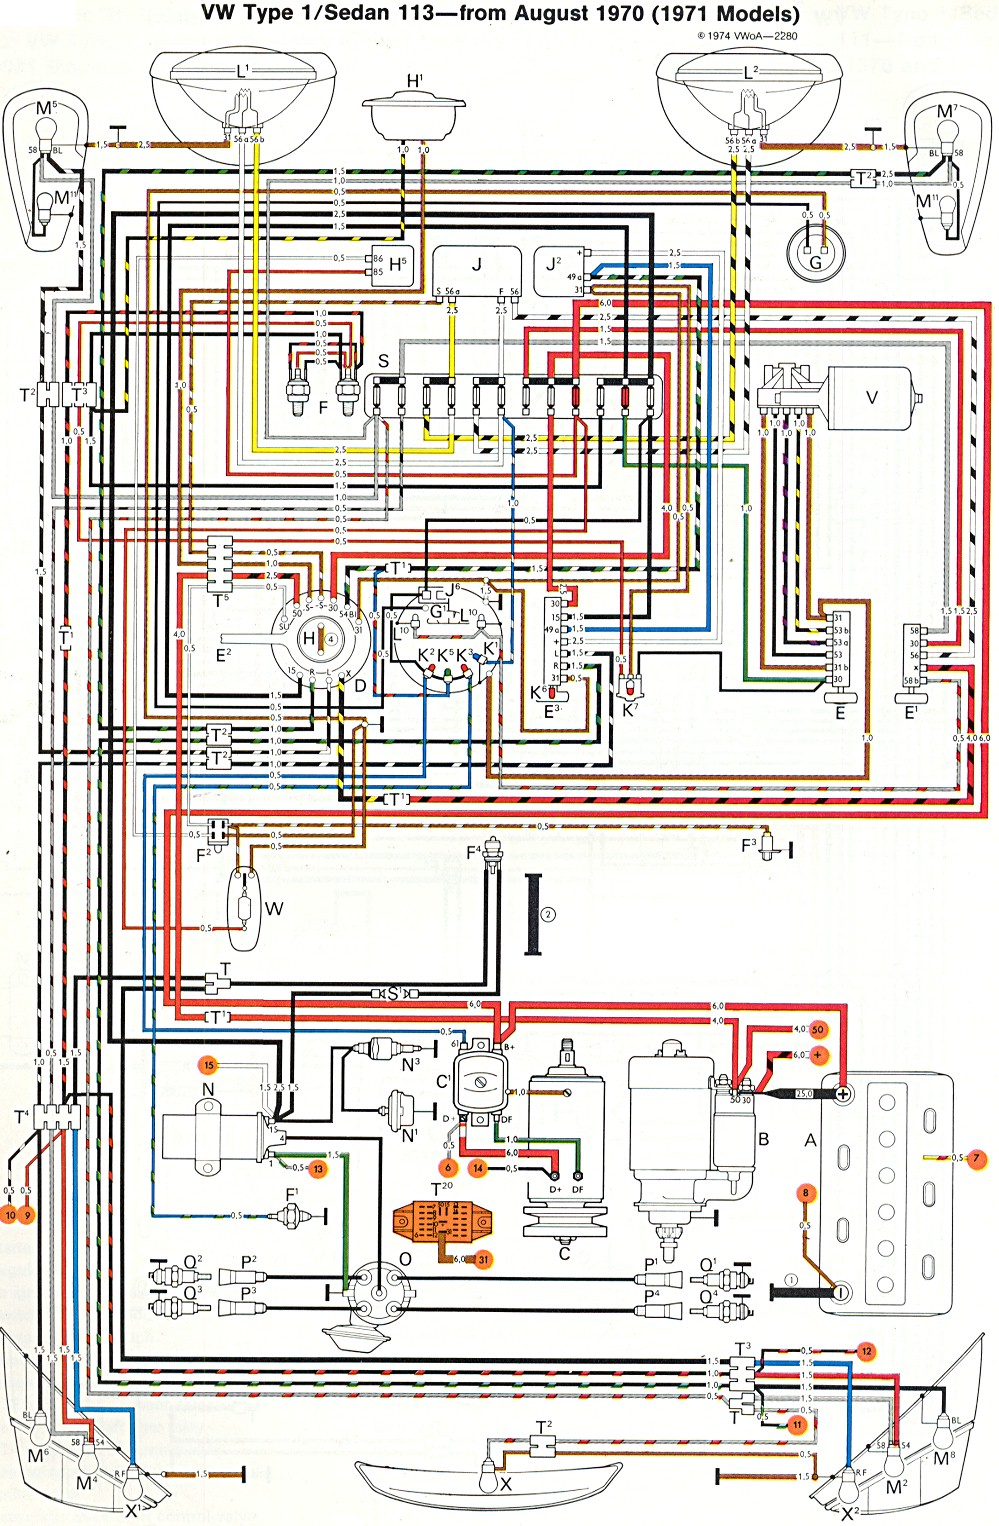 bug_super_71 2001 vw beetle wiring diagram 1964 vw beetle wiring diagram 1963 vw beetle wiring harness at panicattacktreatment.co